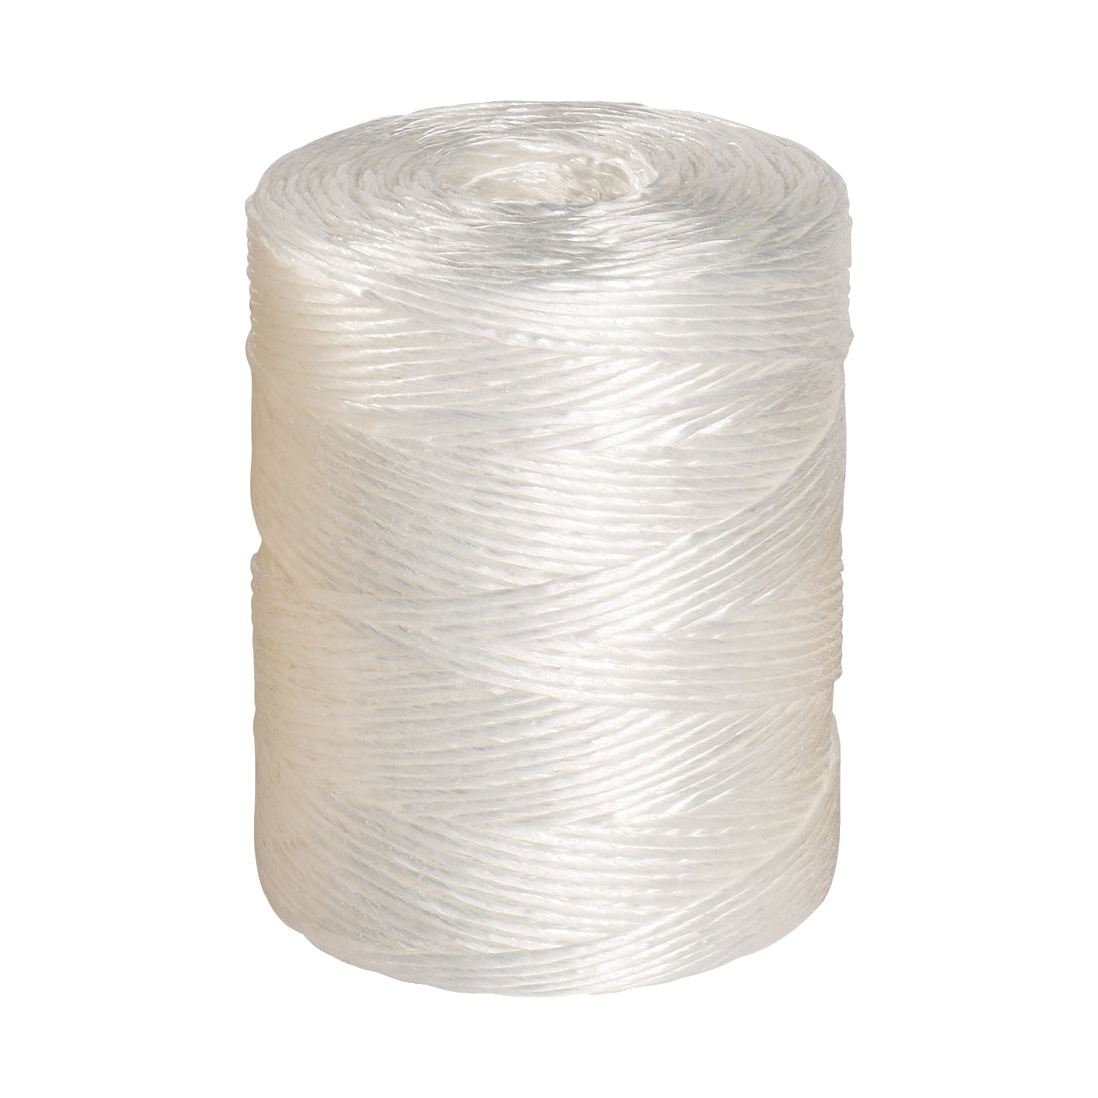 String or twine Twine Polypropylene Medium 1kg 450m White